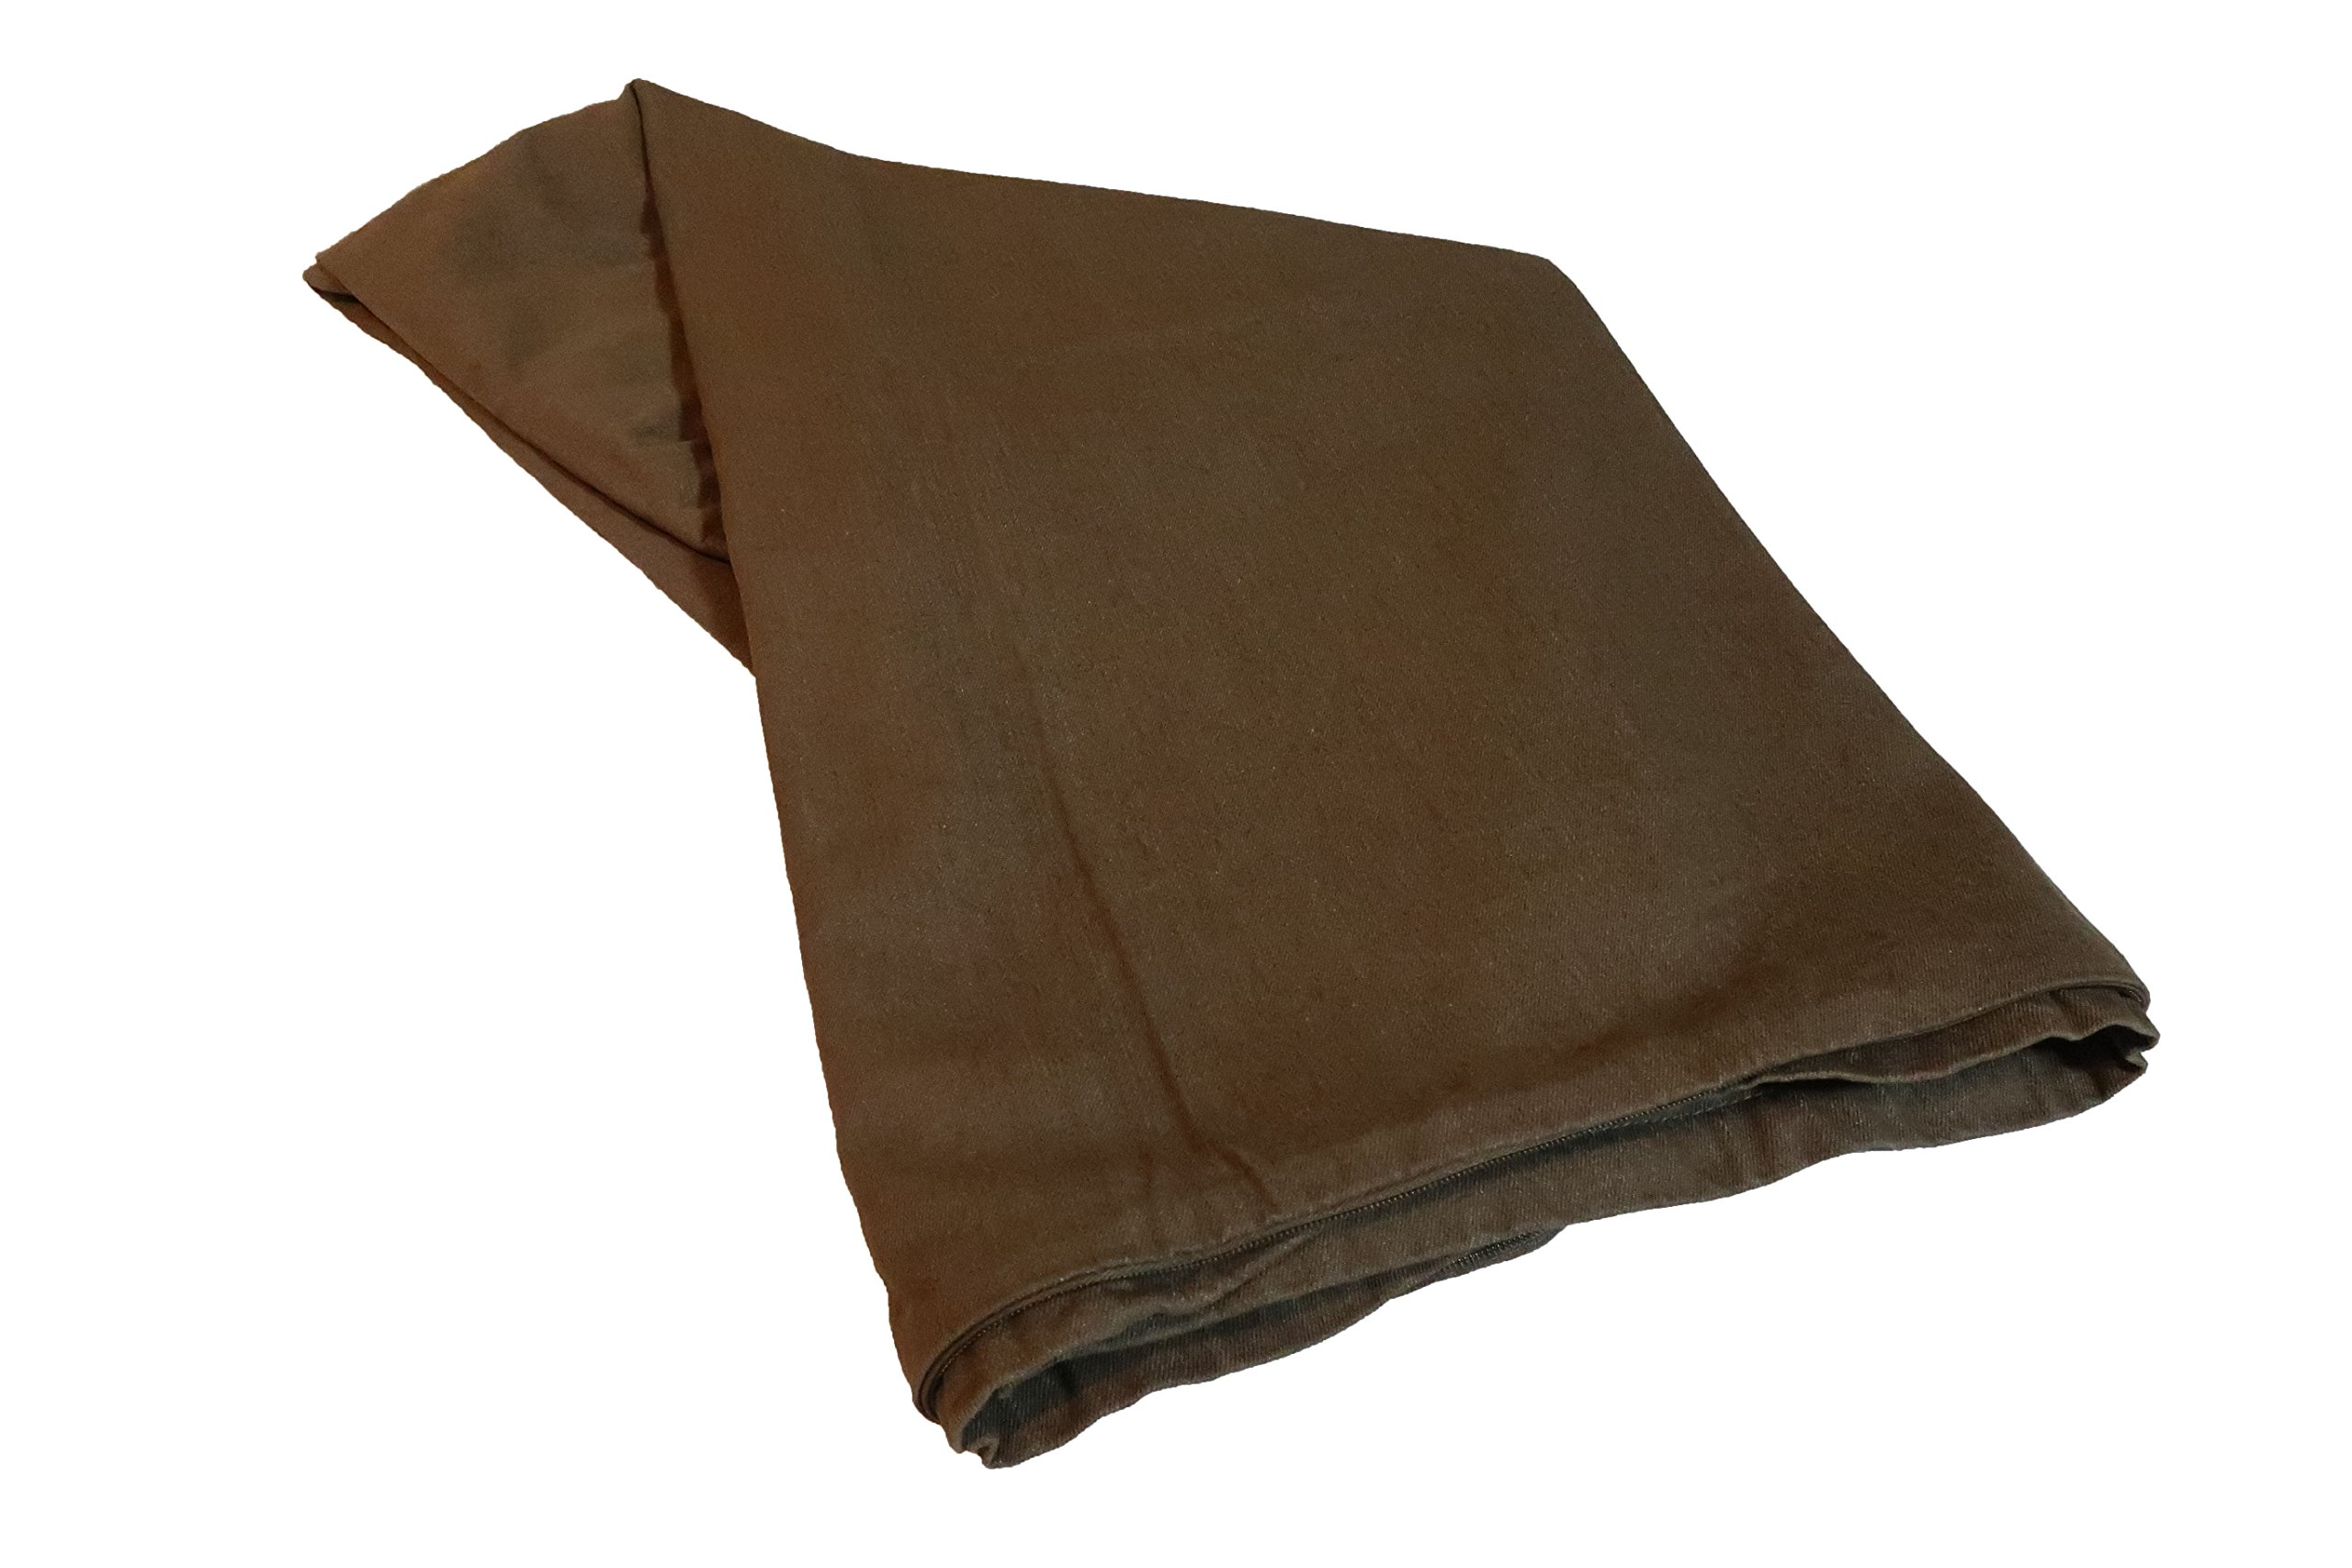 BarksPetComfort 35''X20''X4'' Inch Premium Comfort Durability Brown Denim Jean Cover for Pillow or Pad With Eyelid Zipper for Small Sized Dogs & Pets [REPLACEABLE COVER ONLY]